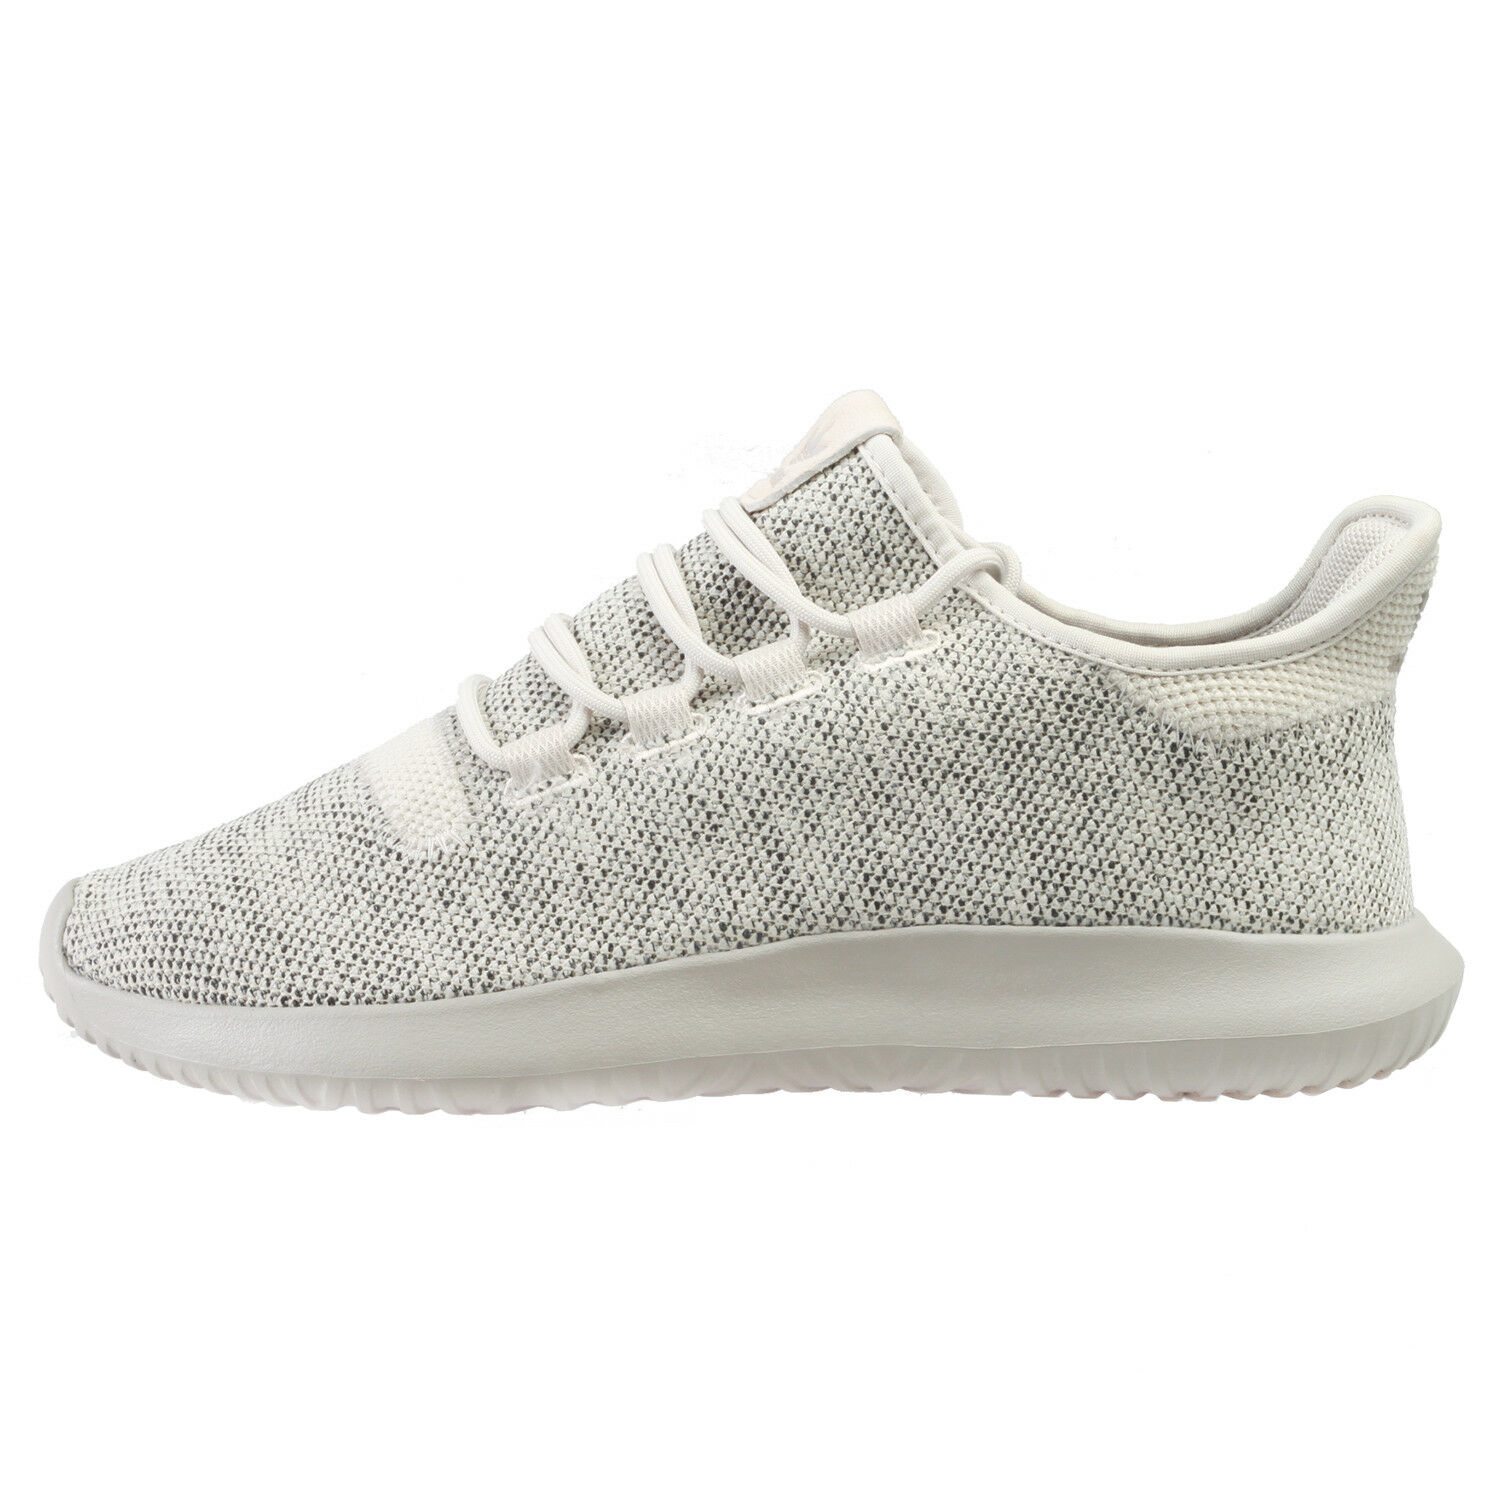 Adidas Tubular Shadow Knit Mens BB8824 Light Brown Melange Knit Shoes Comfortable The most popular shoes for men and women